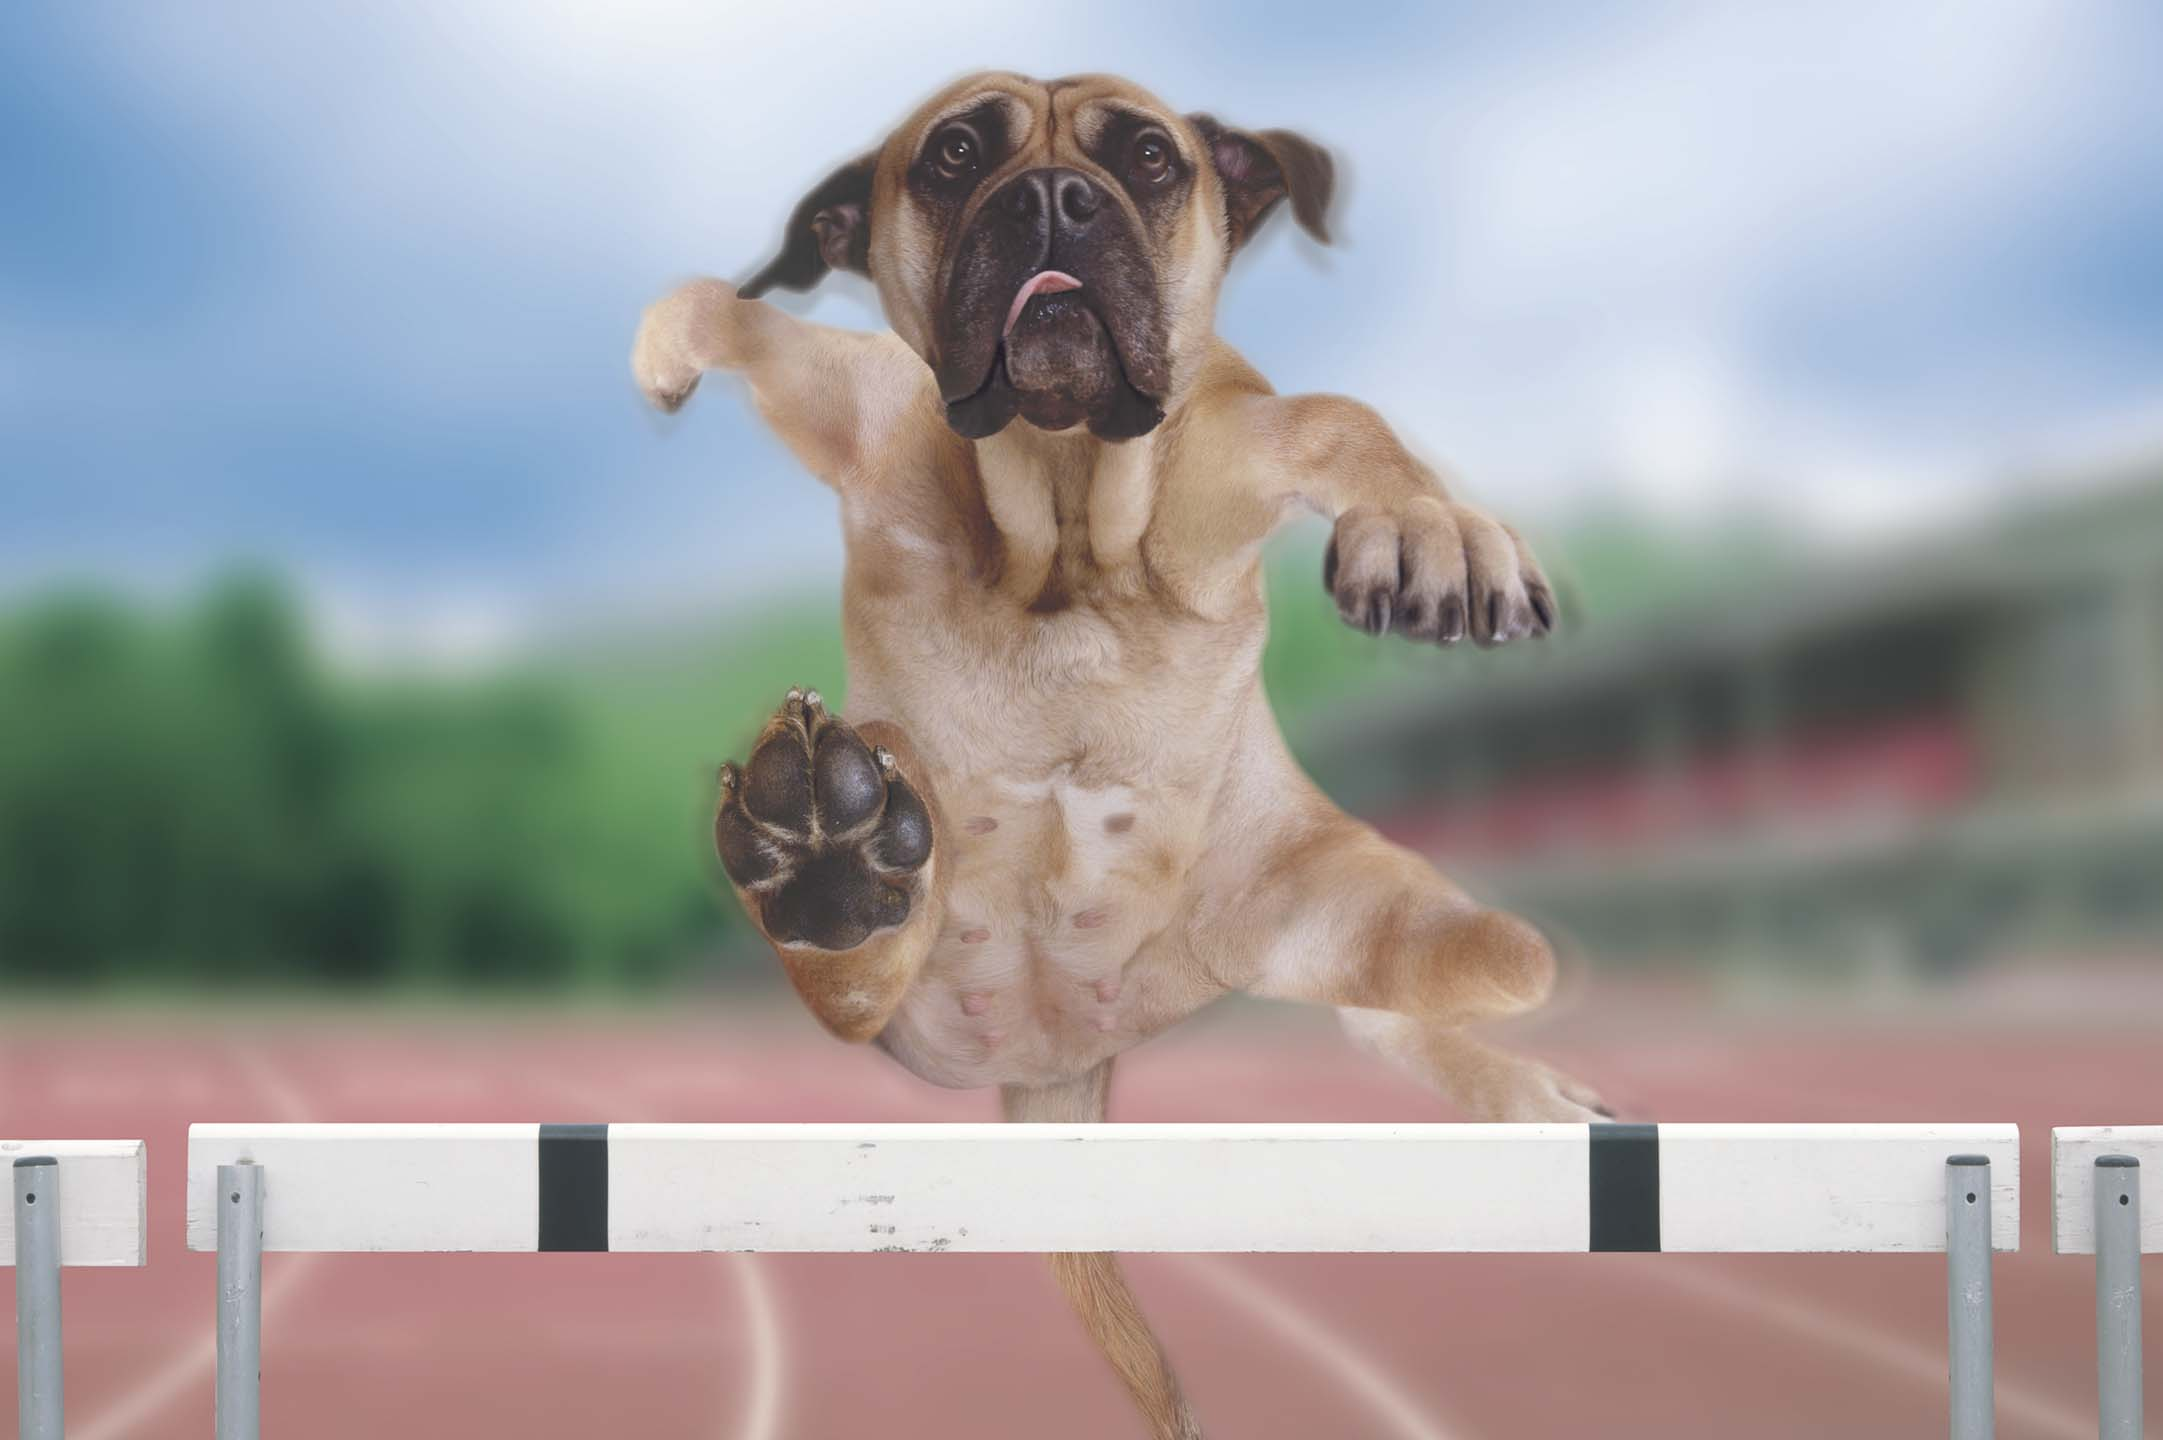 Alex Howe animal running dog  sprint on track field hurdle